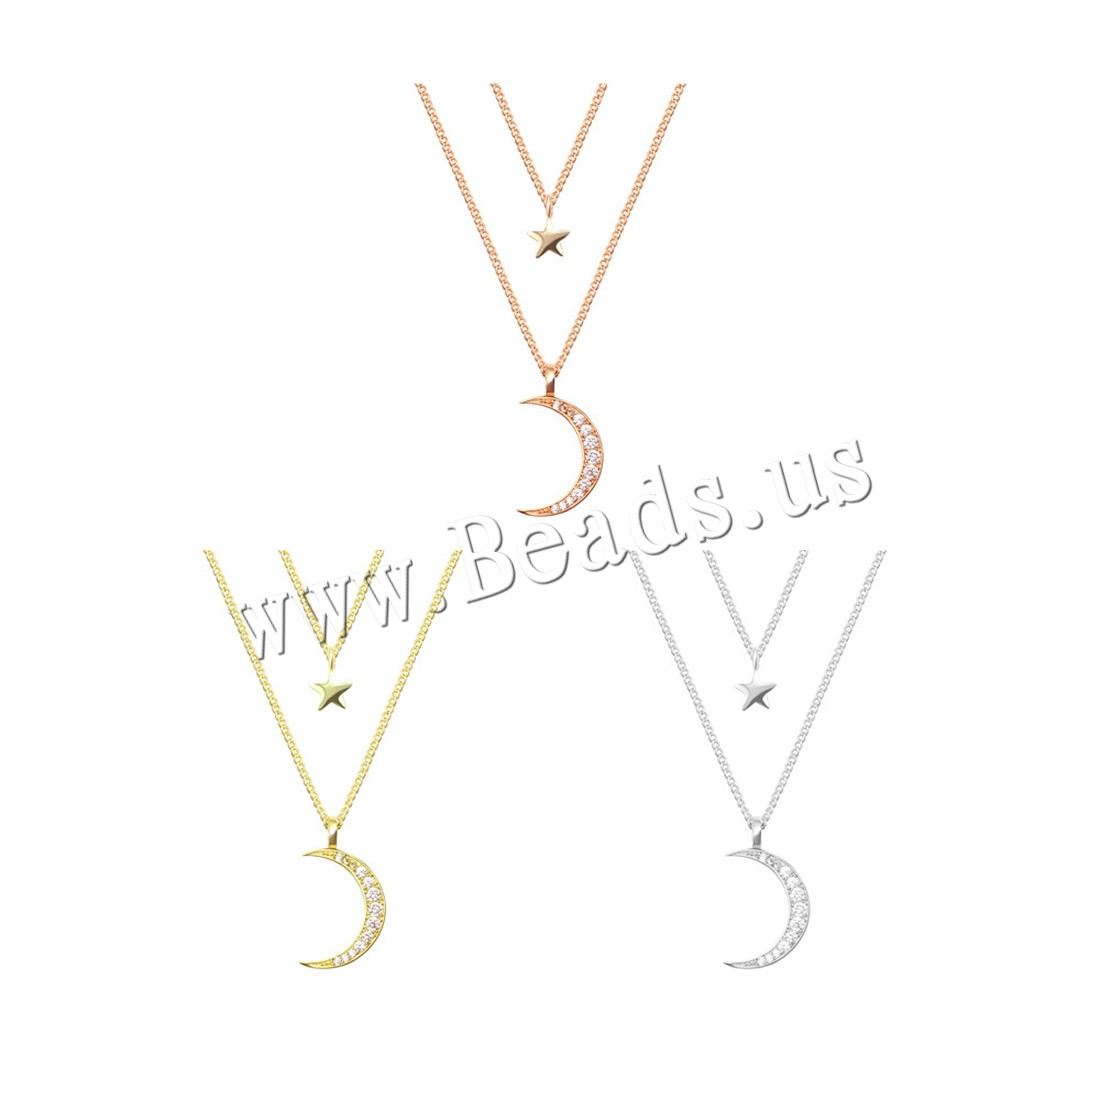 Buy Brass Necklace 5cm extender chain Moon Star 18K gold plated twist oval chain & woman & cubic zirconia & 2-strand colors choice nickel lead & cadmium free 45cm Sold Per Approx 17 Inch Strand